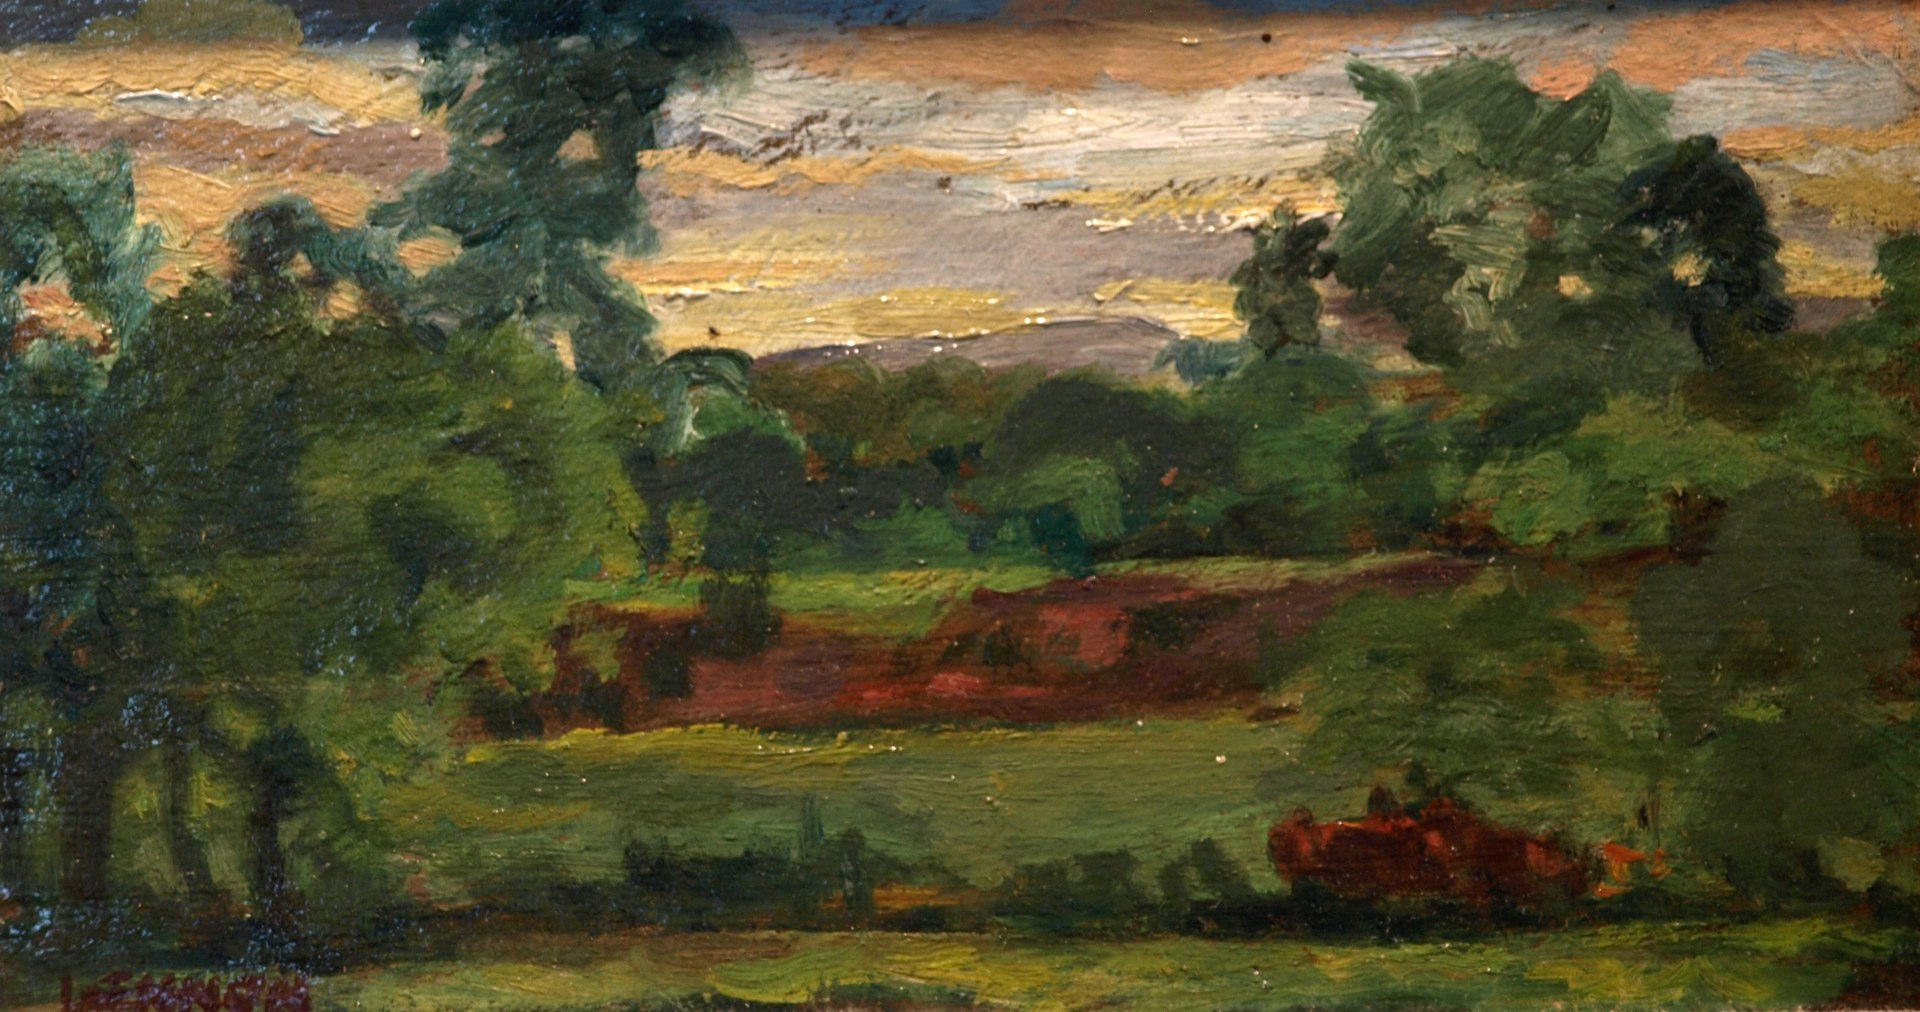 Sunset Sky - Summer, Oil on Panel, 6 x 10 Inches, by Bernard Lennon, $225